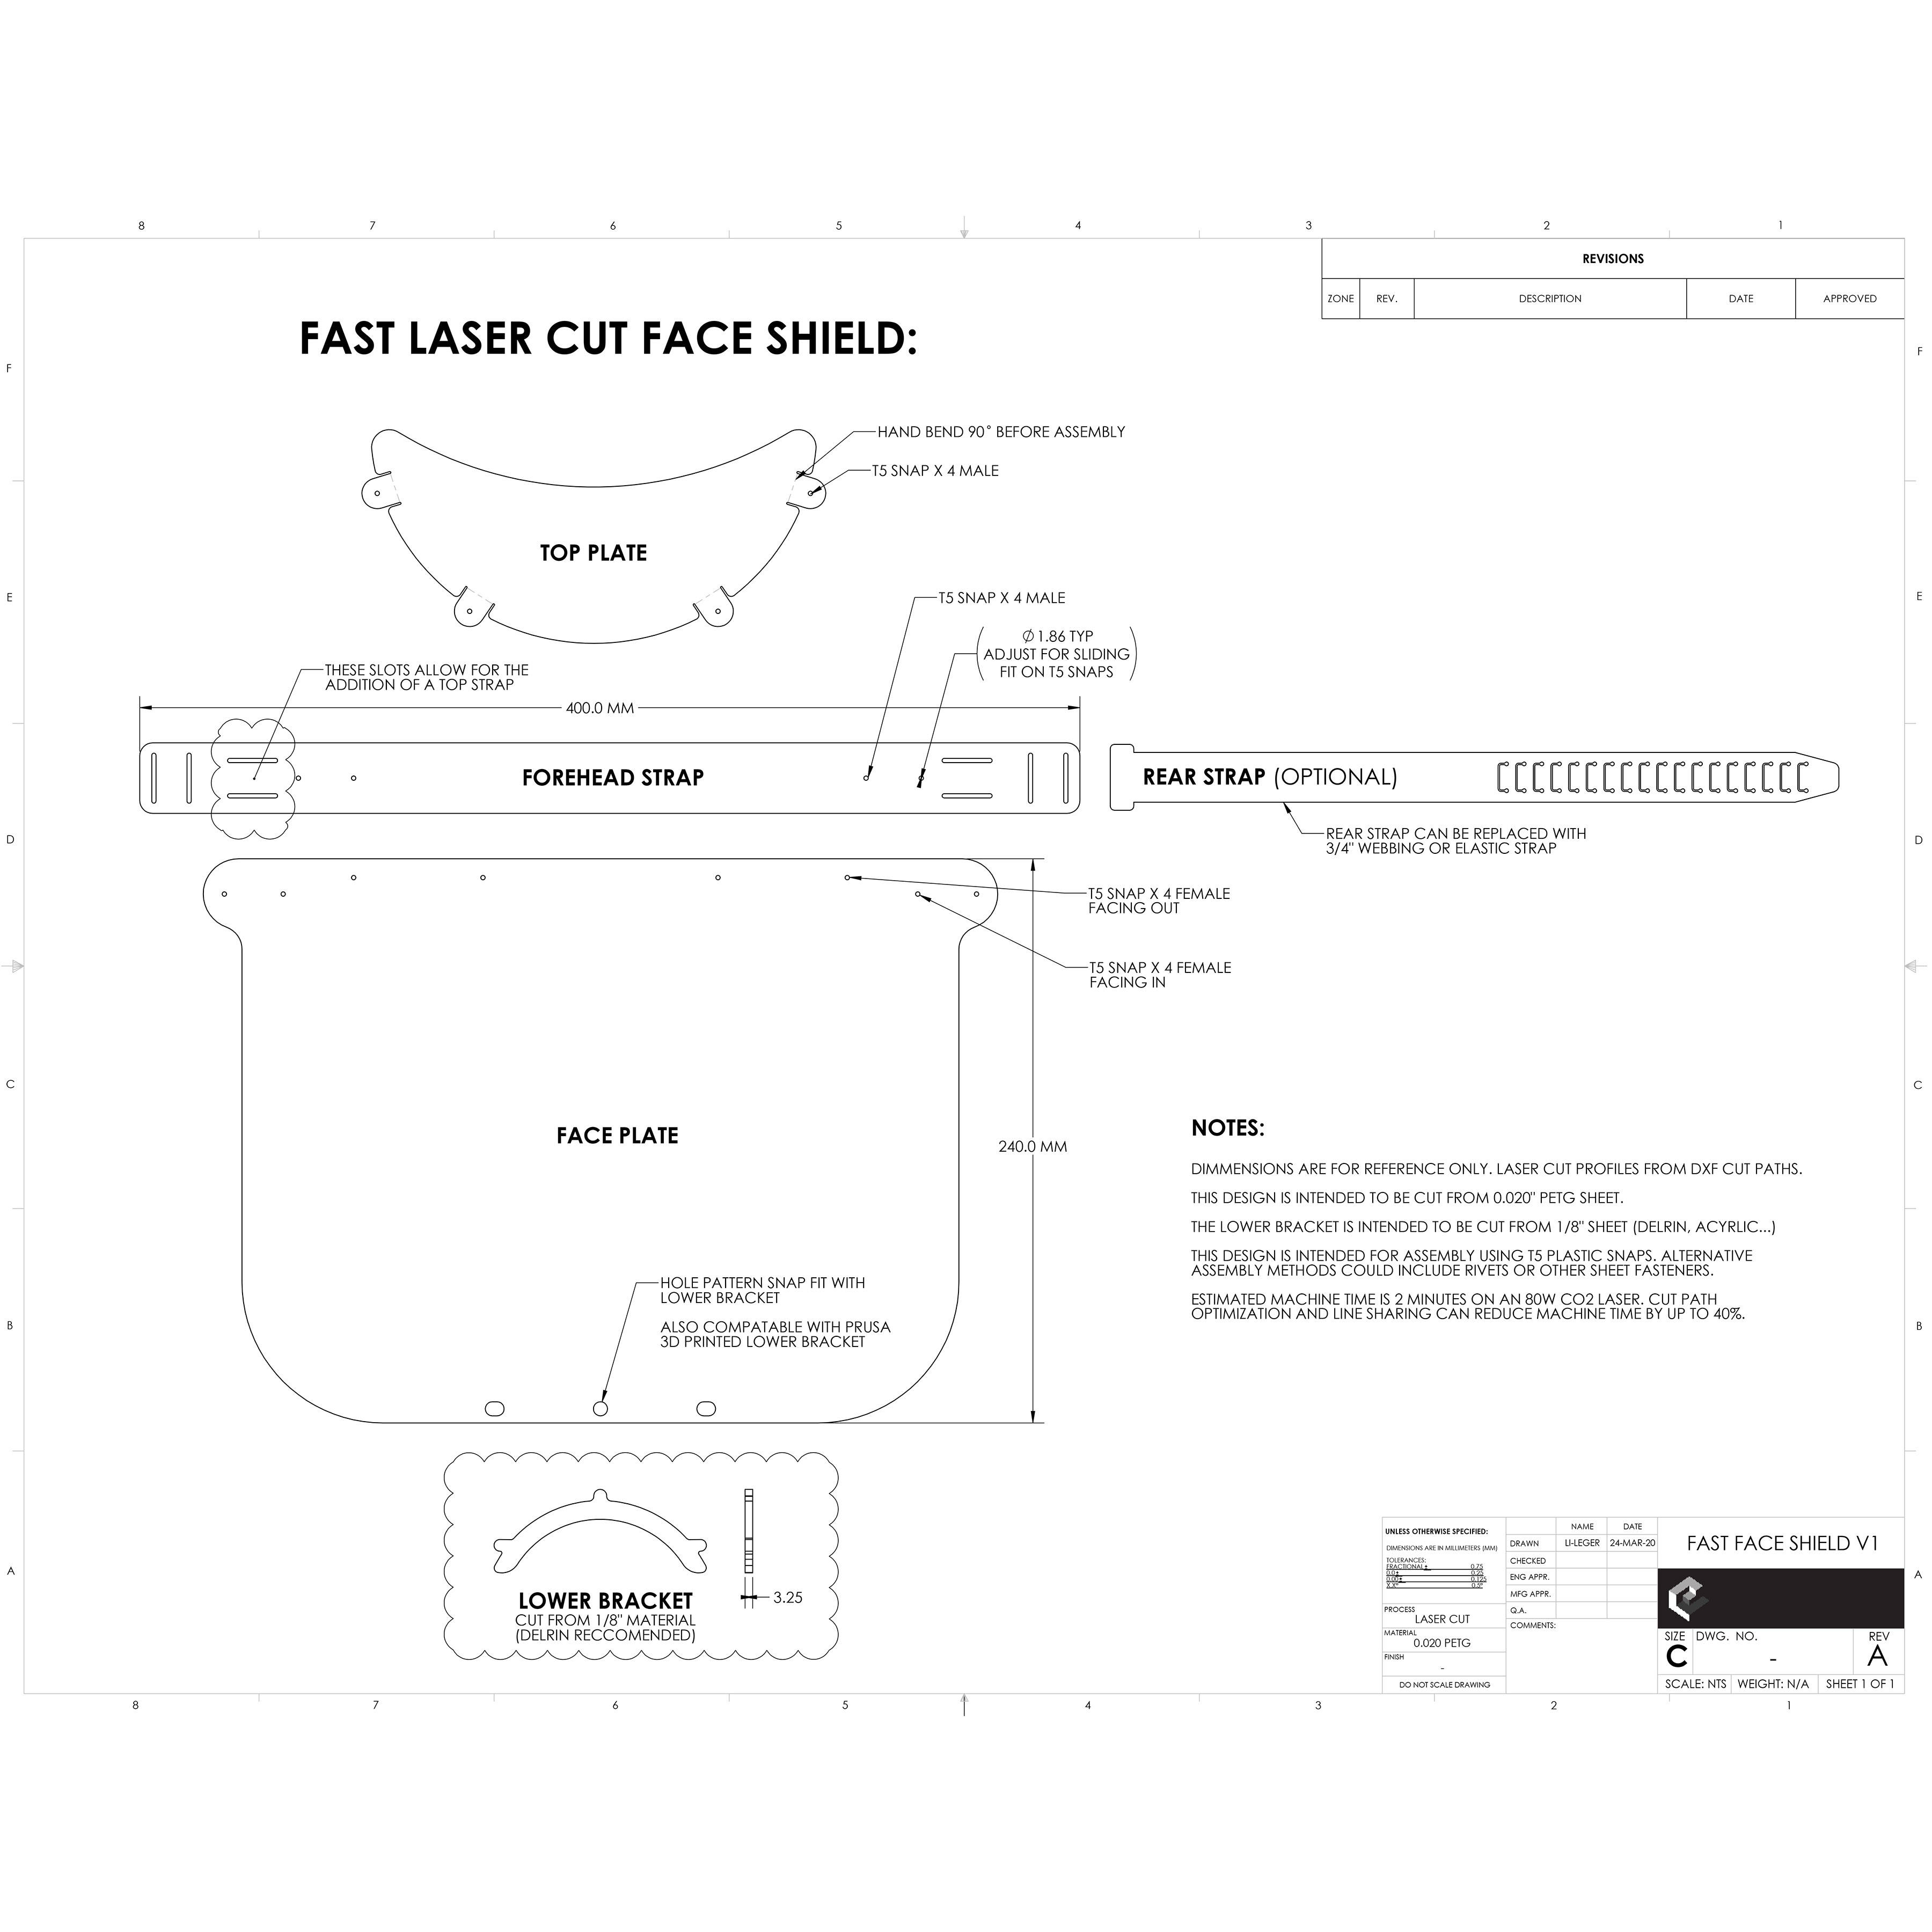 Fast Face Shield V1 Cut Path Overview